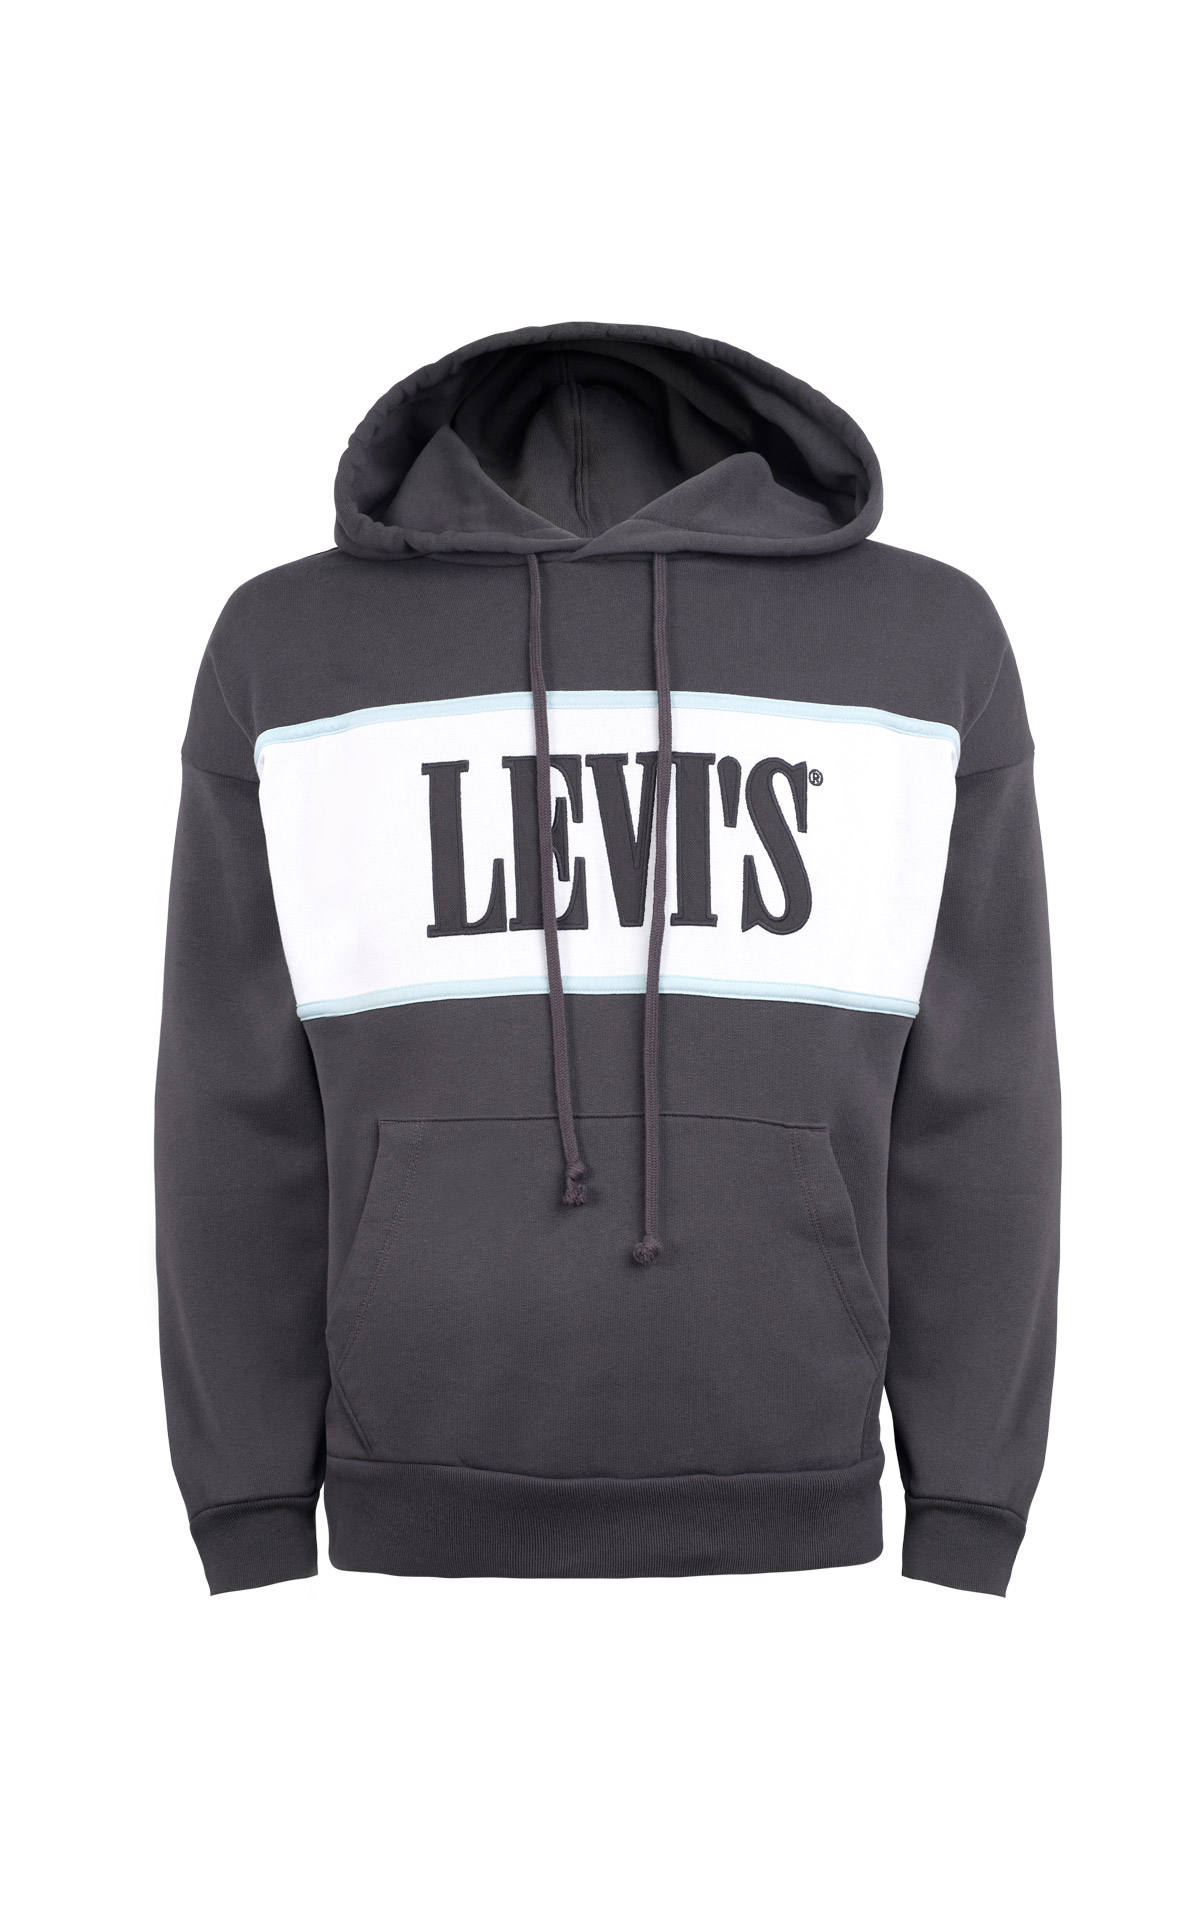 Dark grey hoodie with logo Levi's